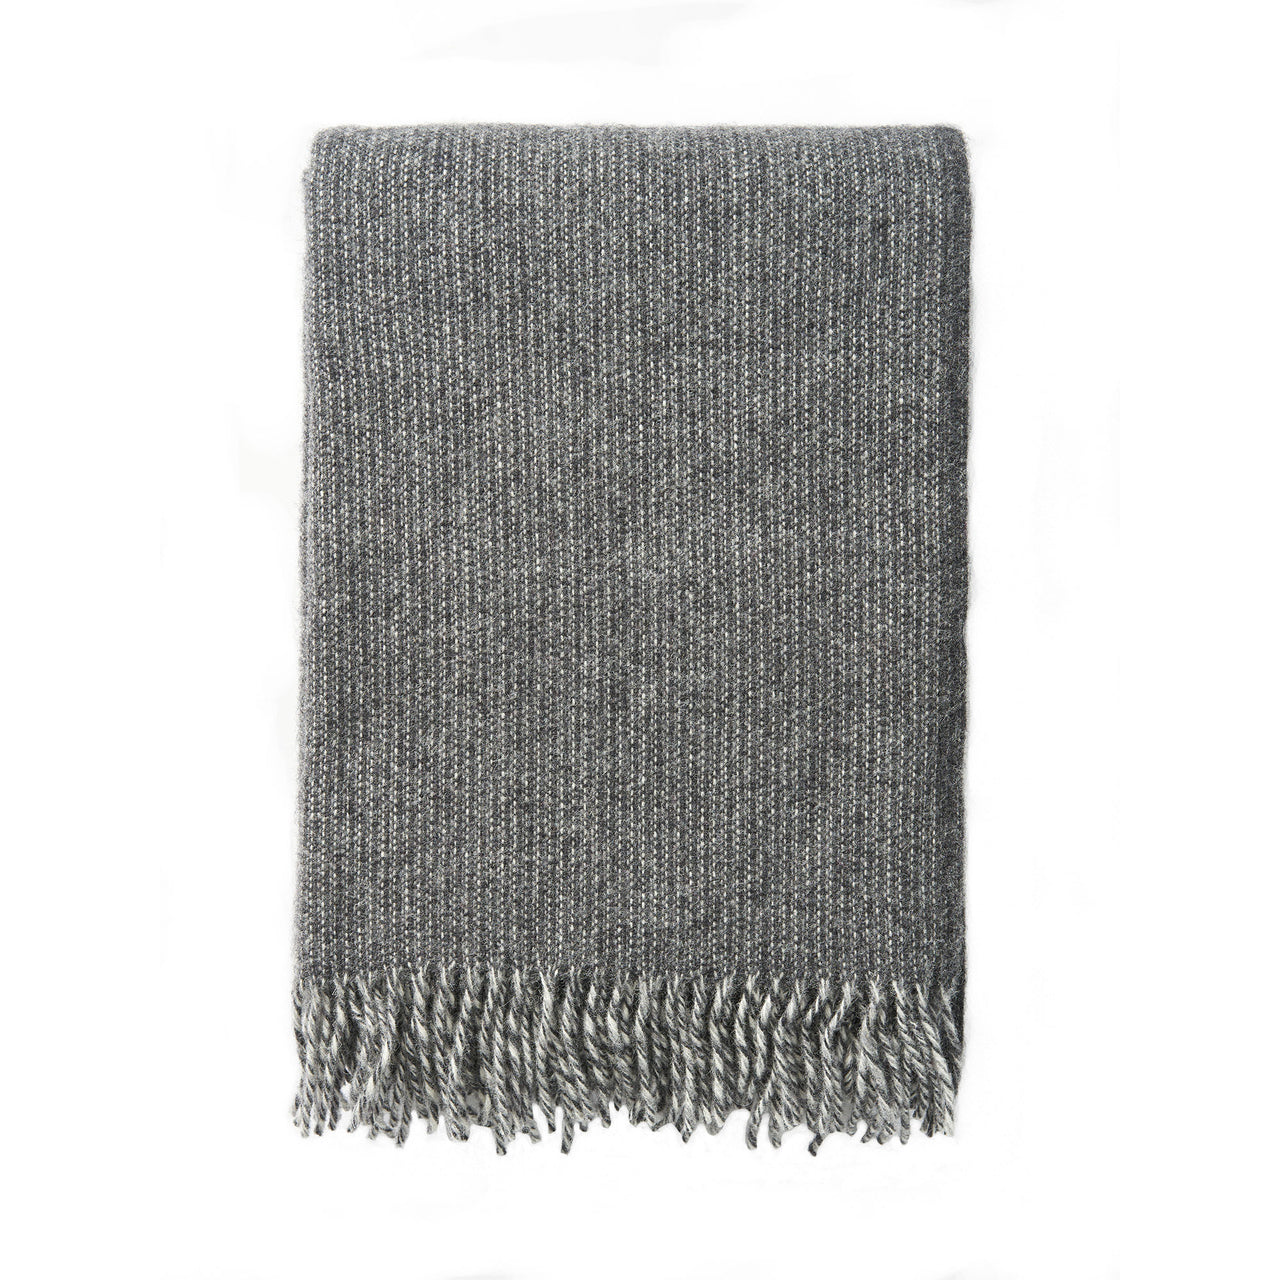 Shimmer Grey 130x200cm Brushed Lambswool Throw